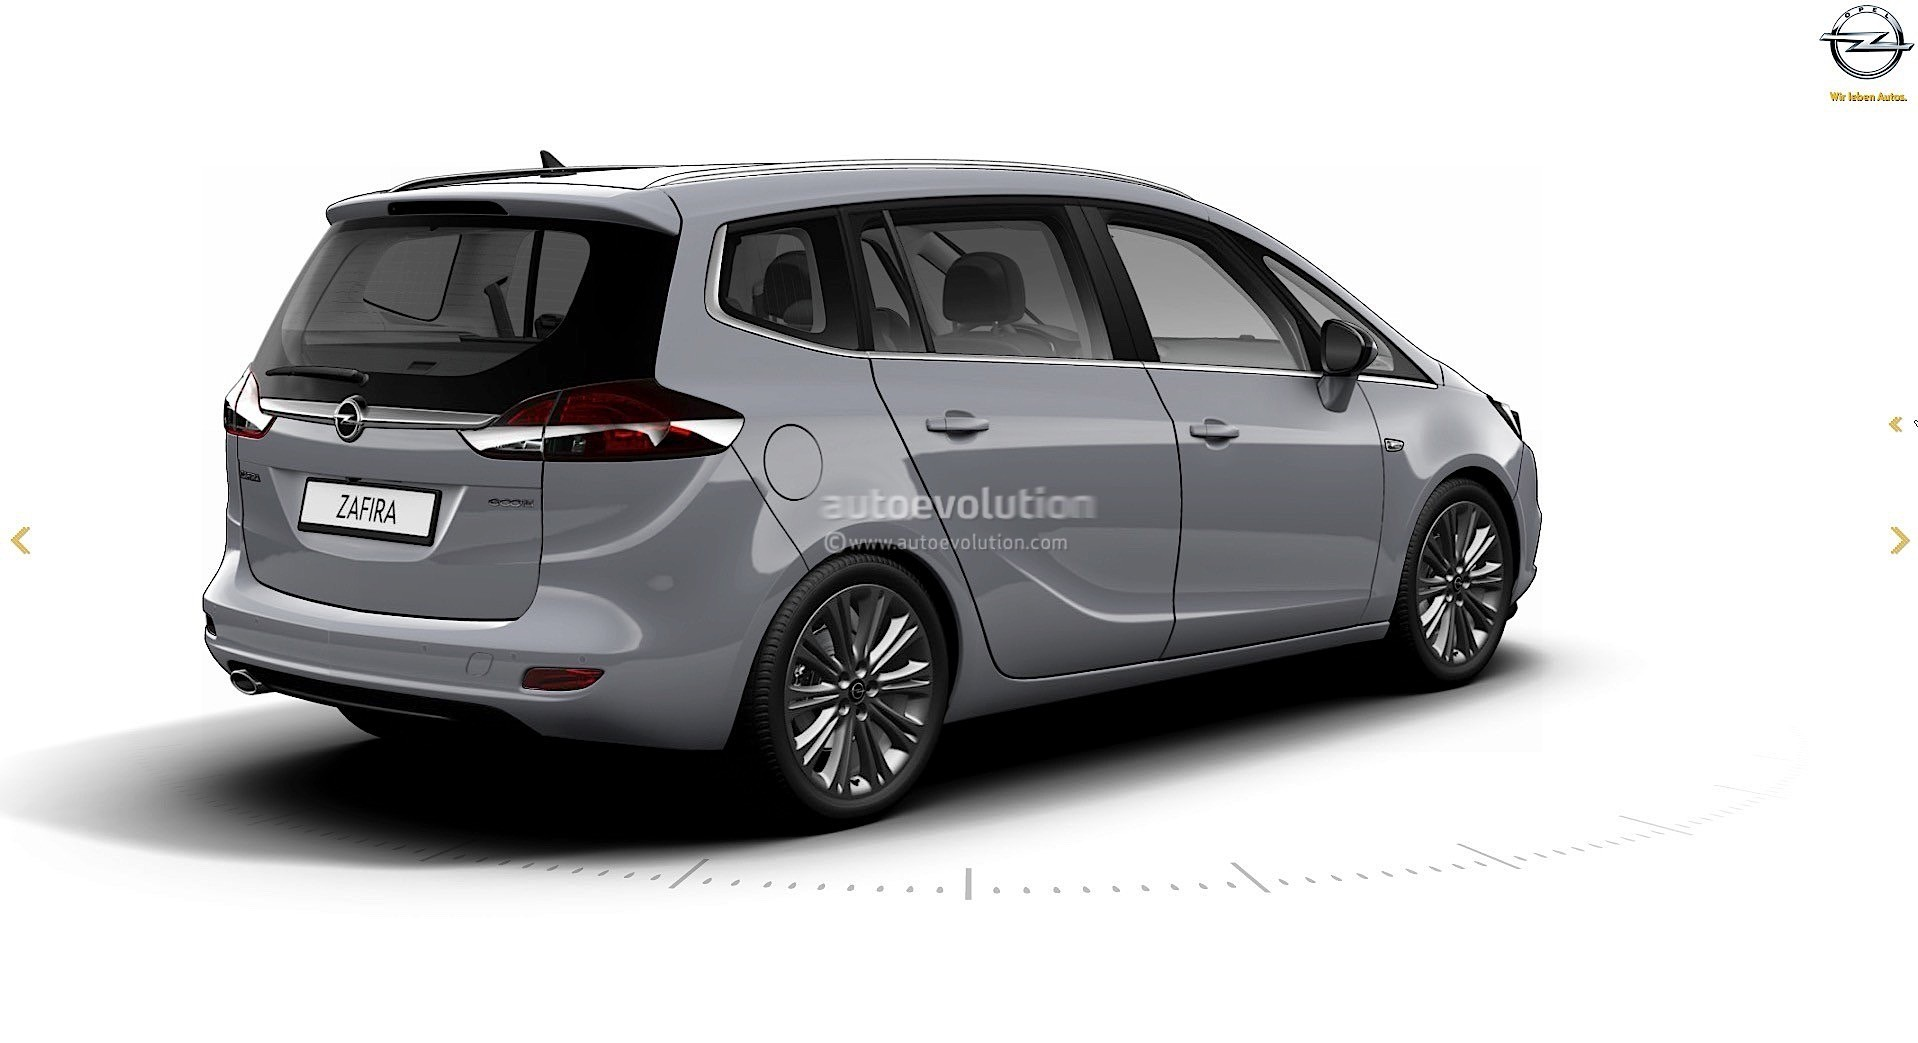 Opel Zafira 2018 >> 2017 Opel Zafira Facelift Leaked On GM Website, Here Are The First Pics - autoevolution